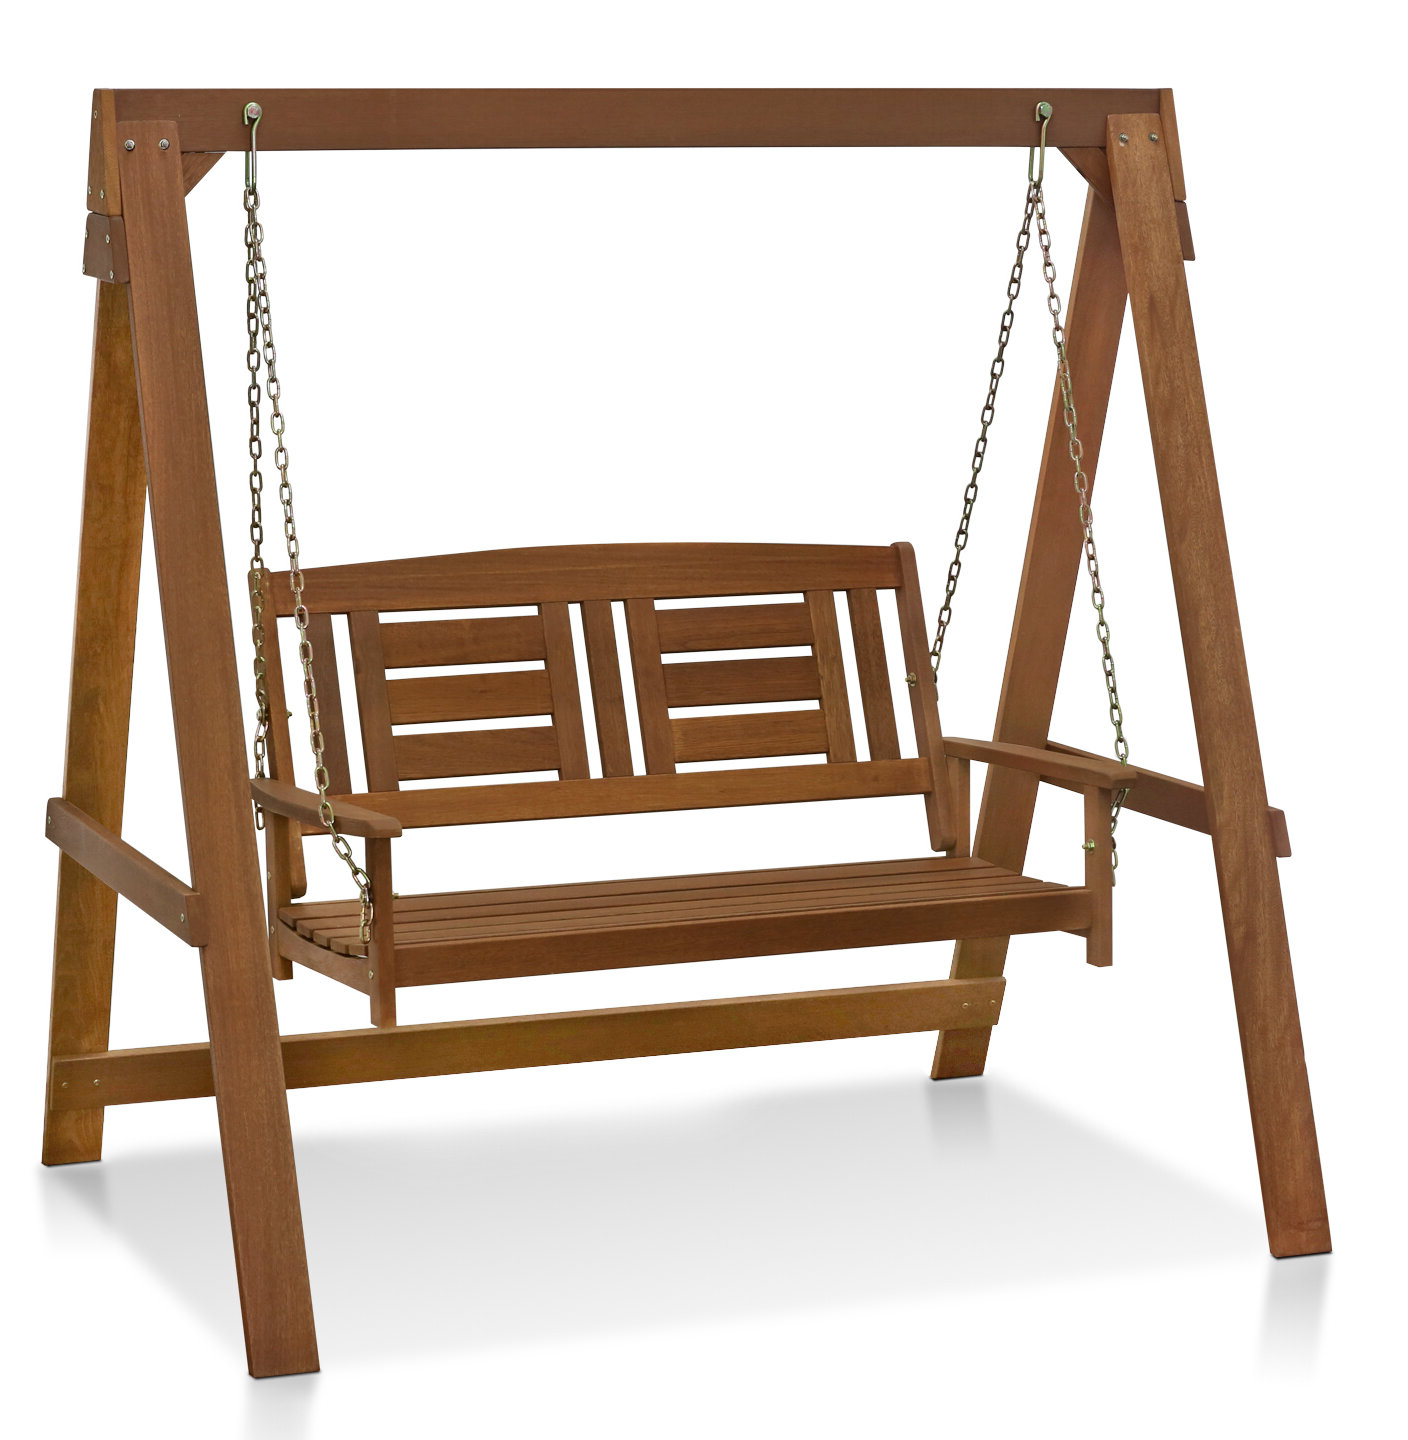 Porch Swings With Stand For Best And Newest Arianna Hardwood Hanging Porch Swing With Stand (View 17 of 25)